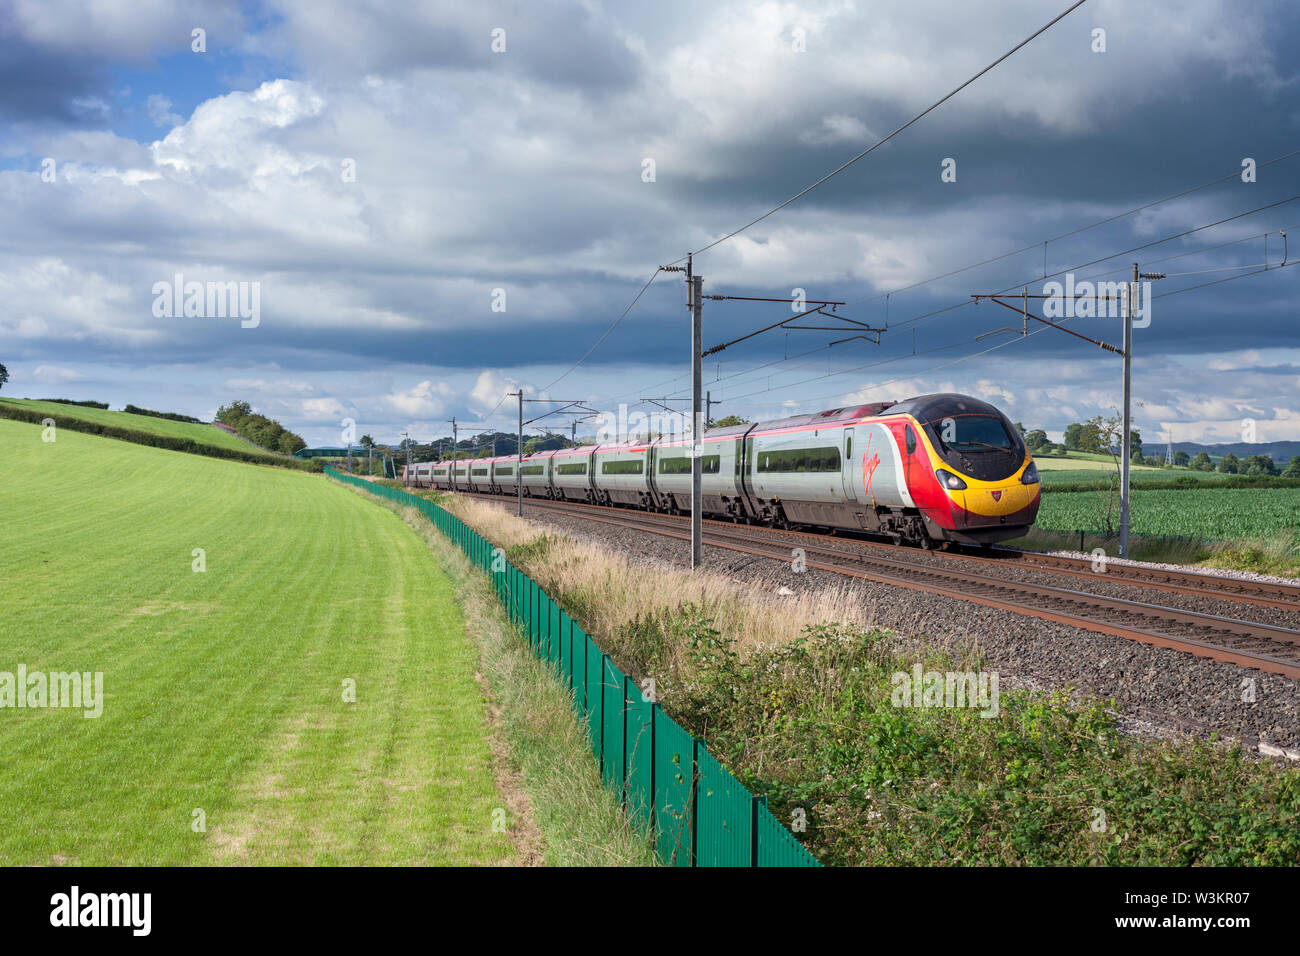 13/07/2019 Wellheads (south of Oxenholme) 390138 city of London 1640 Glasgow Central to London Euston - Stock Image